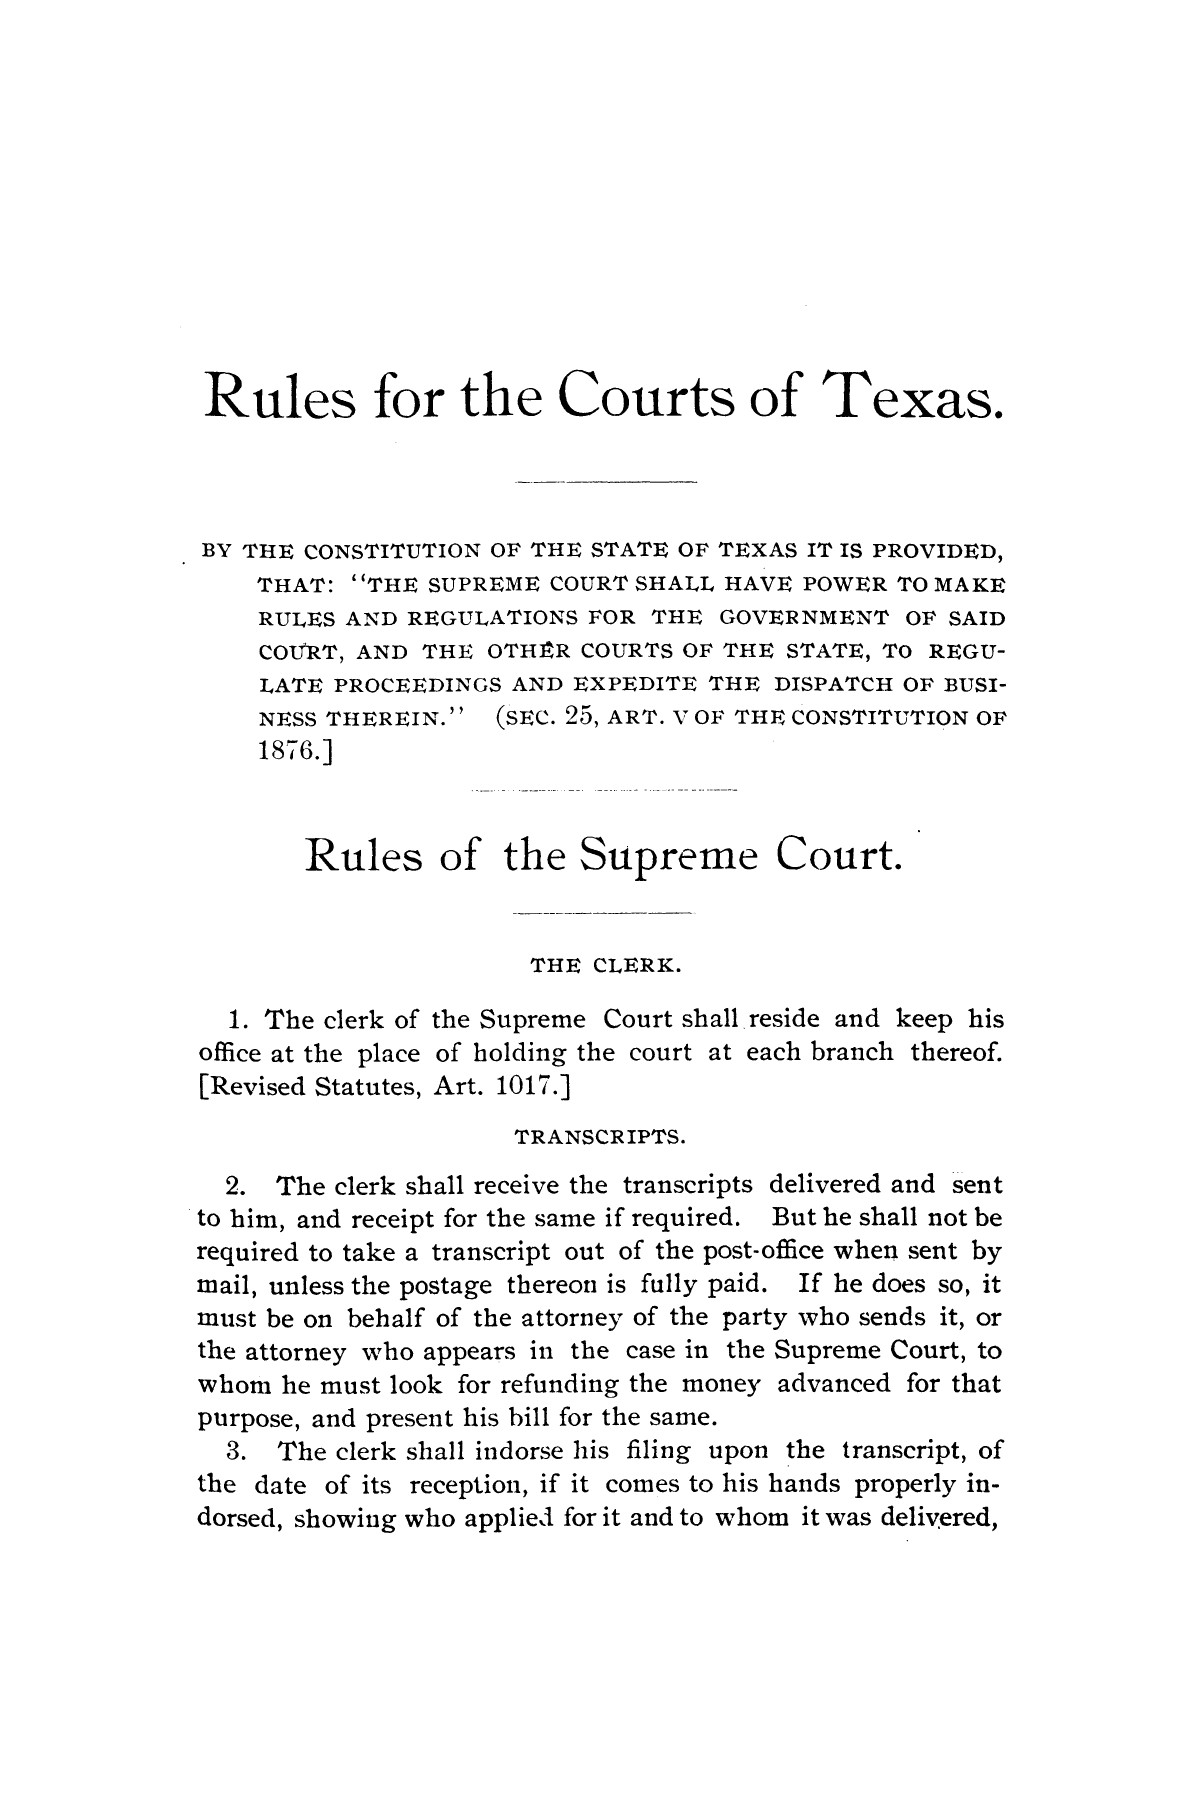 Rules for the courts of Texas: adopted by order of the Supreme Court at Tyler on the first day of December, A.D. 1877: together with amendments thereto at various times up to the close of the Austin term, A.D. 1890                                                                                                      [Sequence #]: 5 of 64